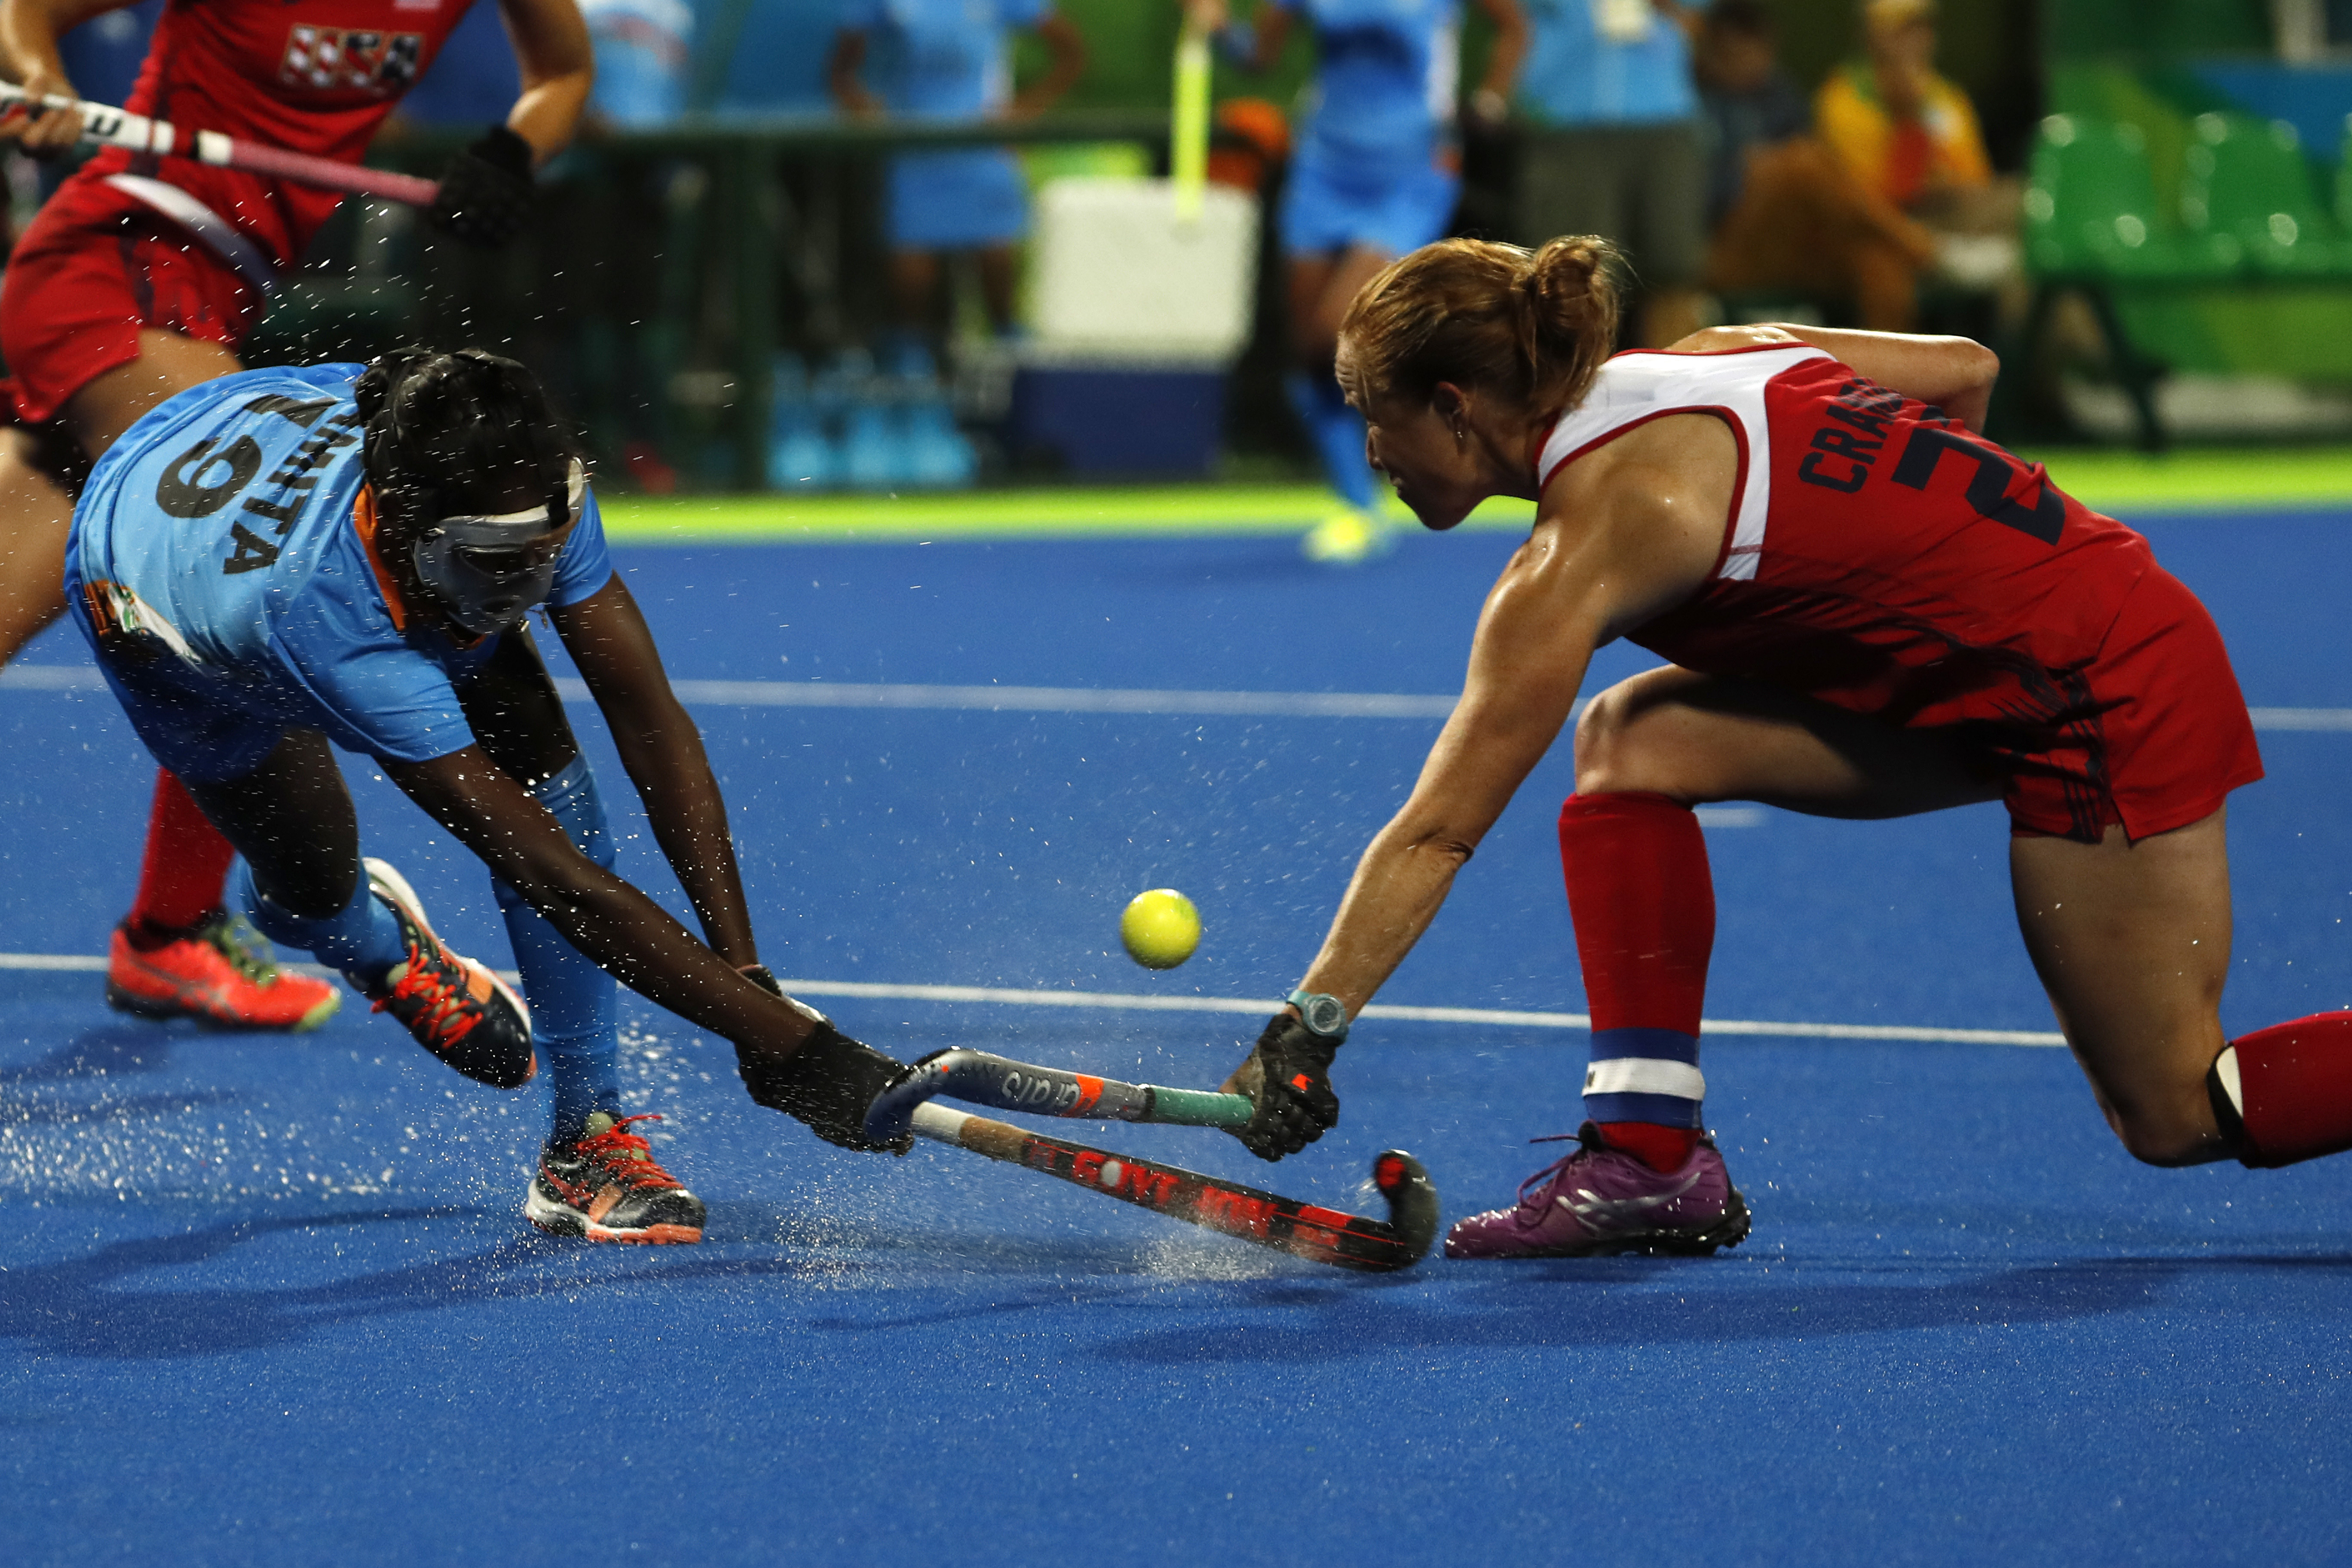 United States' Lauren Crandall, right, fights for the ball with India's Namita Toppo during a women's field hockey match at the 2016 Summer Olympics in Rio de Janeiro, Brazil, Thursday, Aug. 11, 2016. (AP Photo/Dario Lopez-Mills)